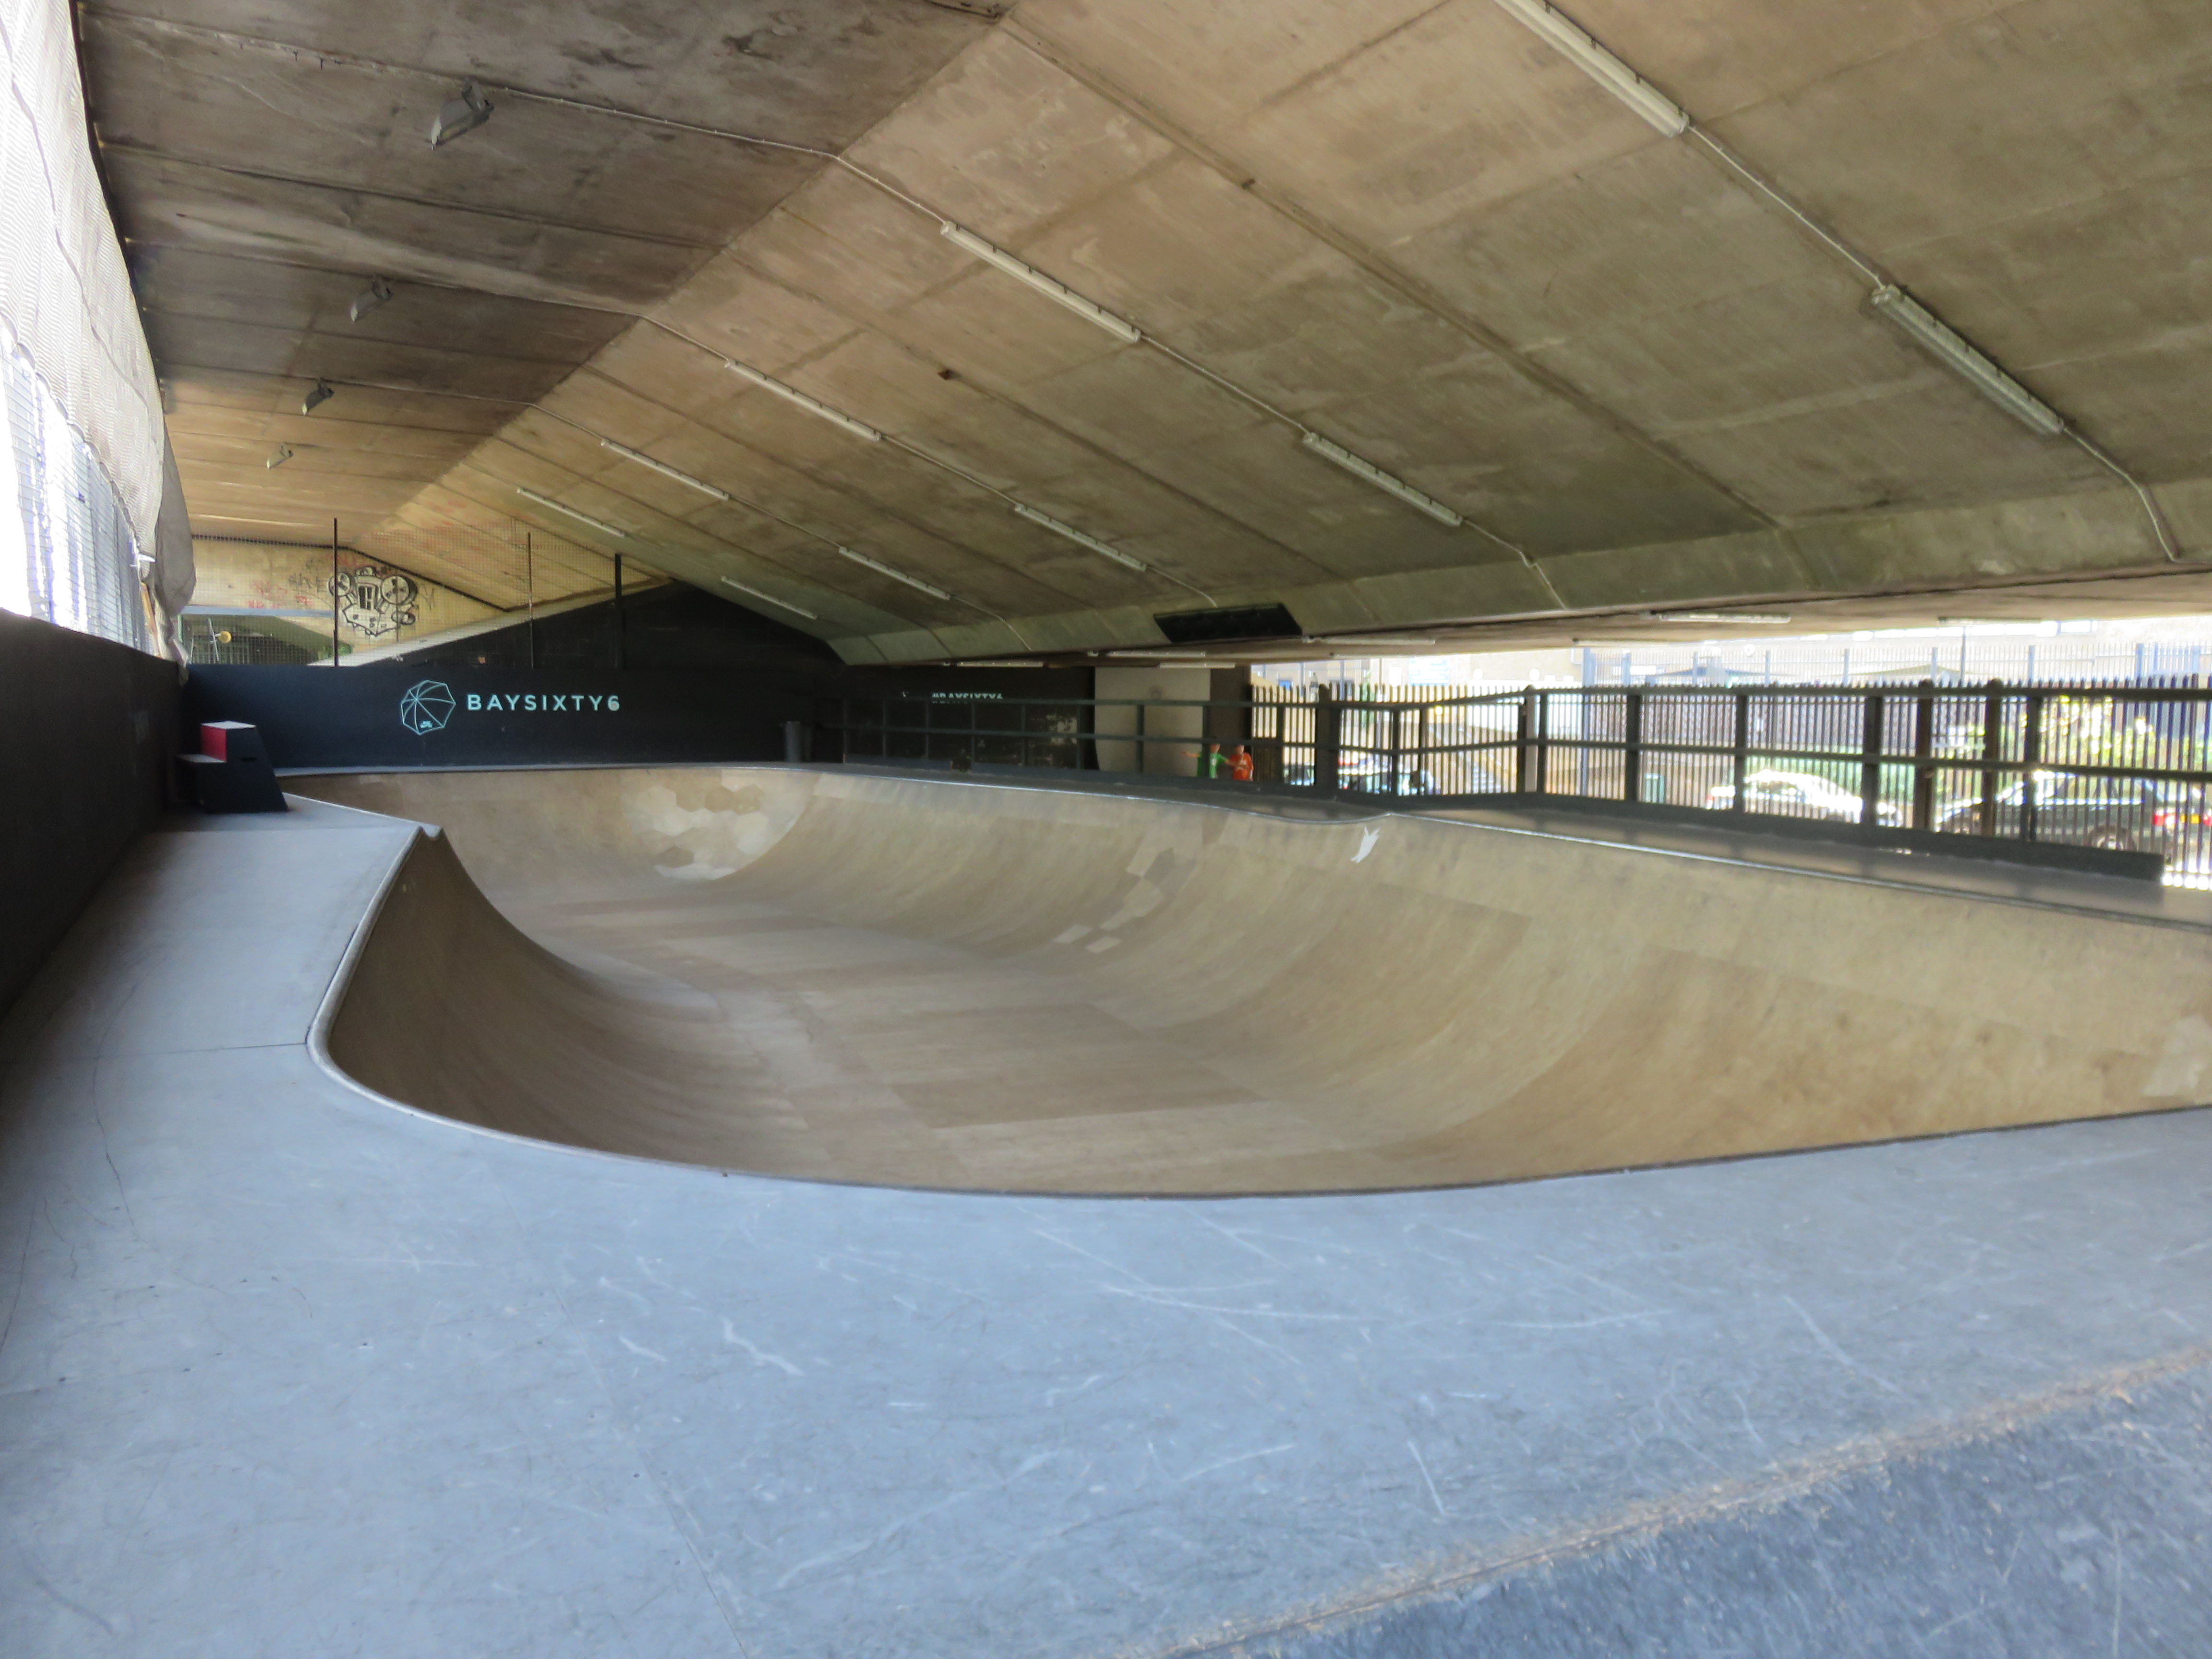 Guide to BaySixty6 Skatepark 9ea94f22a799